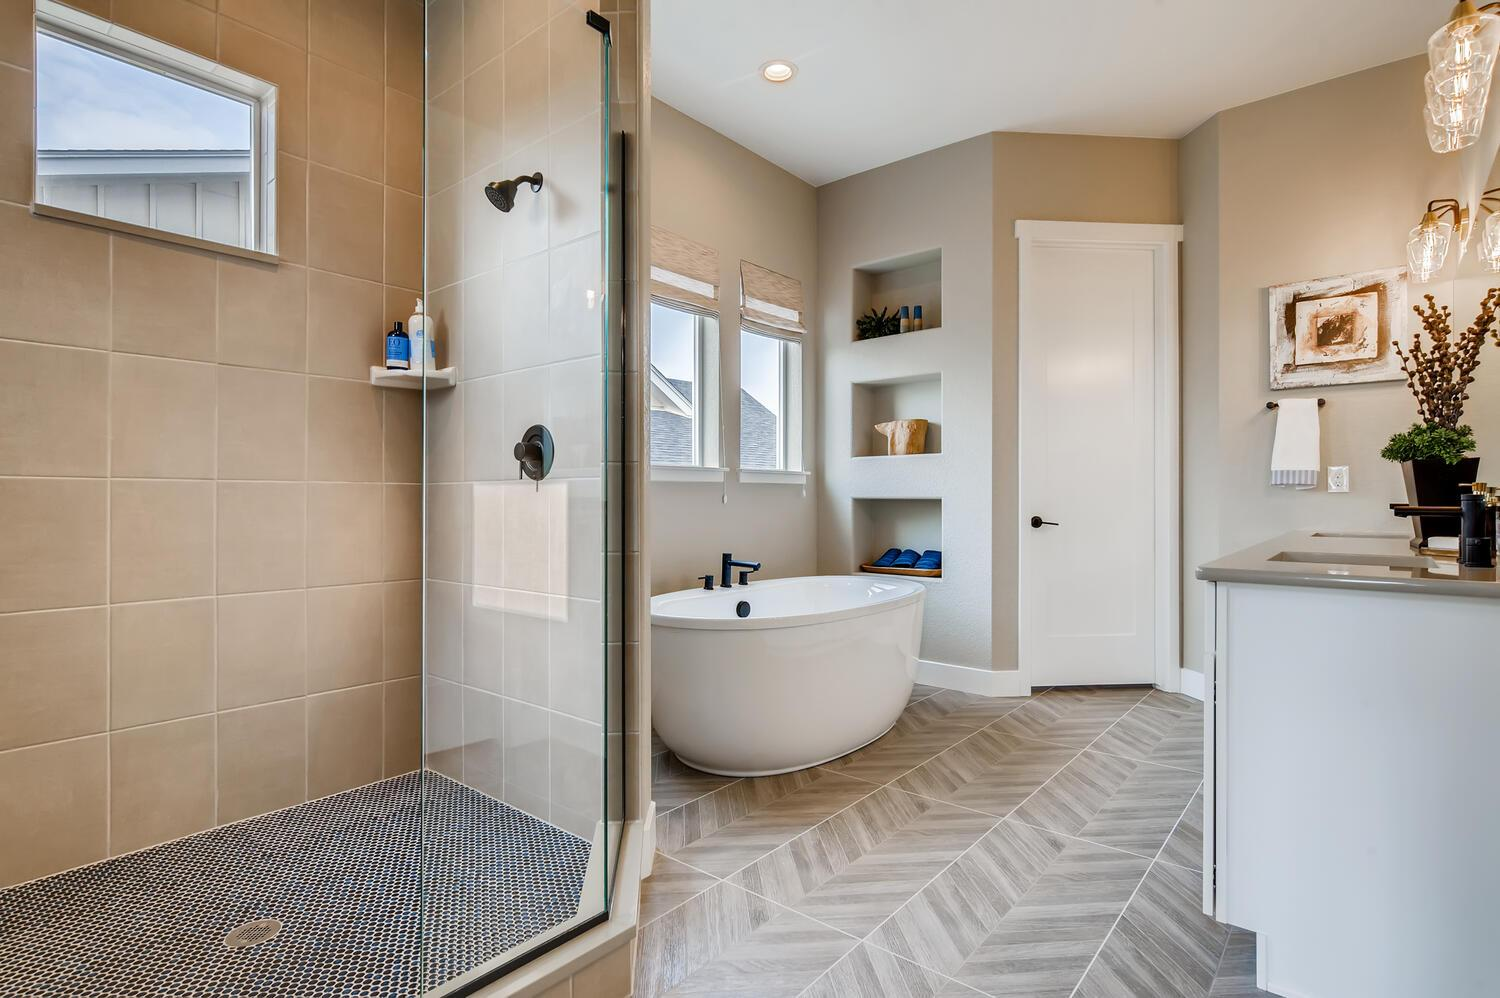 Bathroom featured in the Grandview By Classic Homes in Colorado Springs, CO